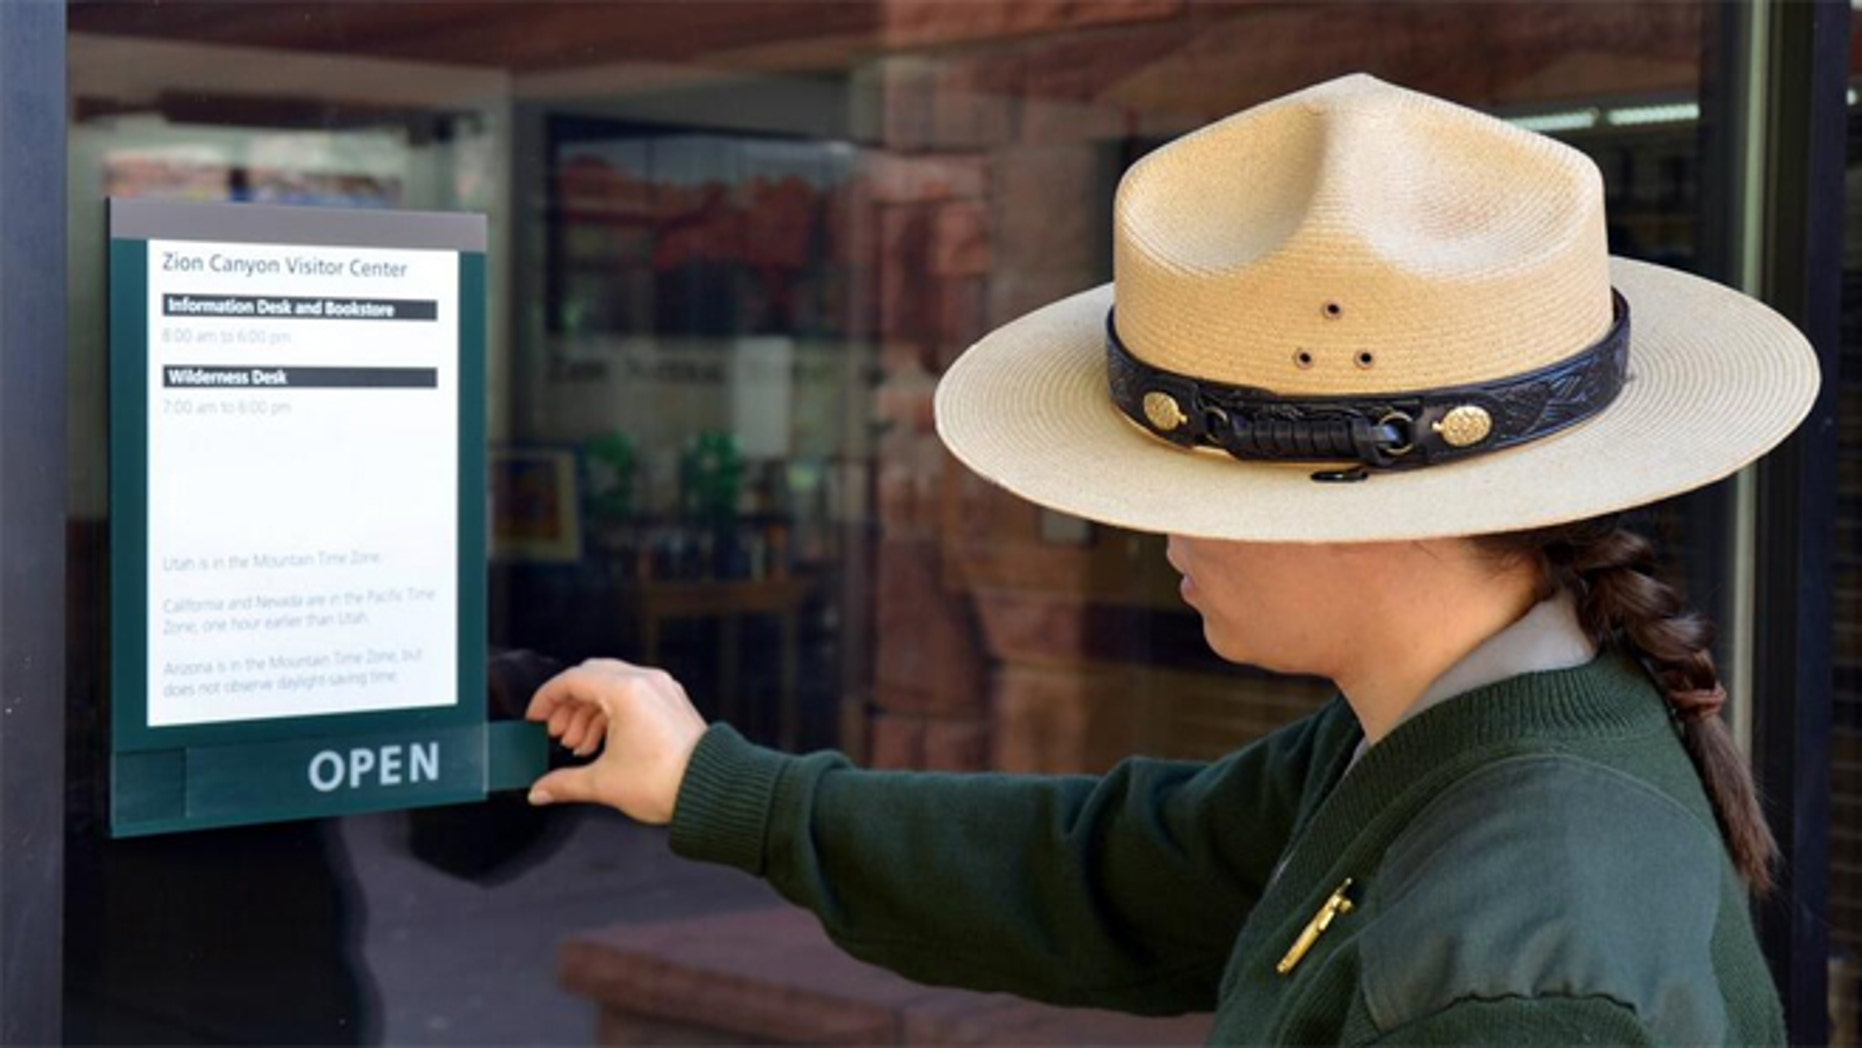 Parts of Zion National Park are already open, including Zion Canyon and Kolob Canyons Visitor Centers.